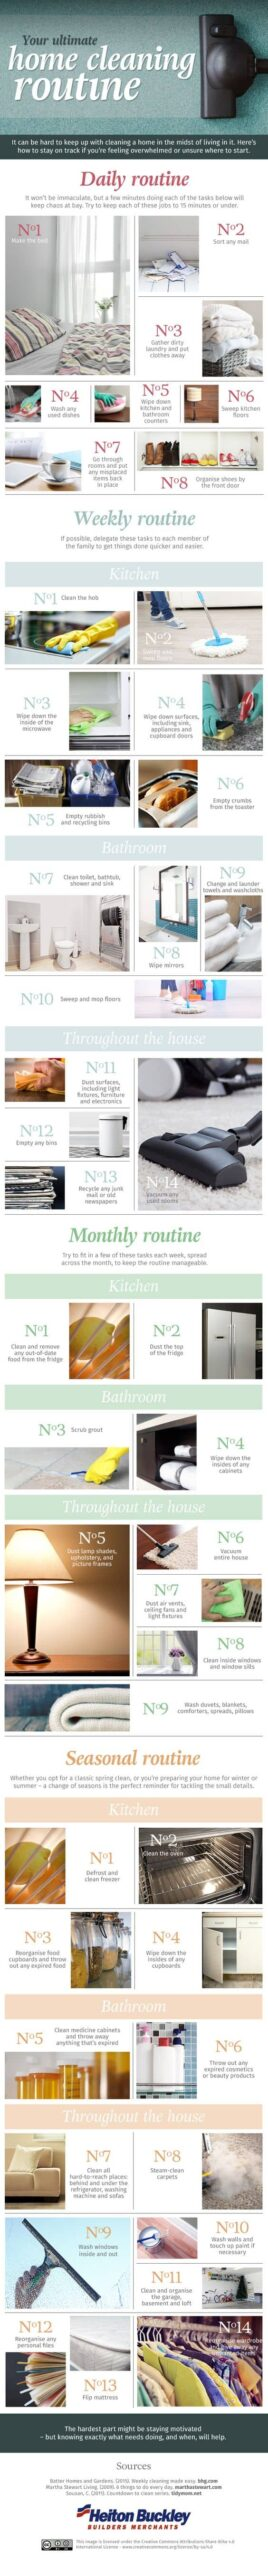 Home Cleaning Routine Infographic